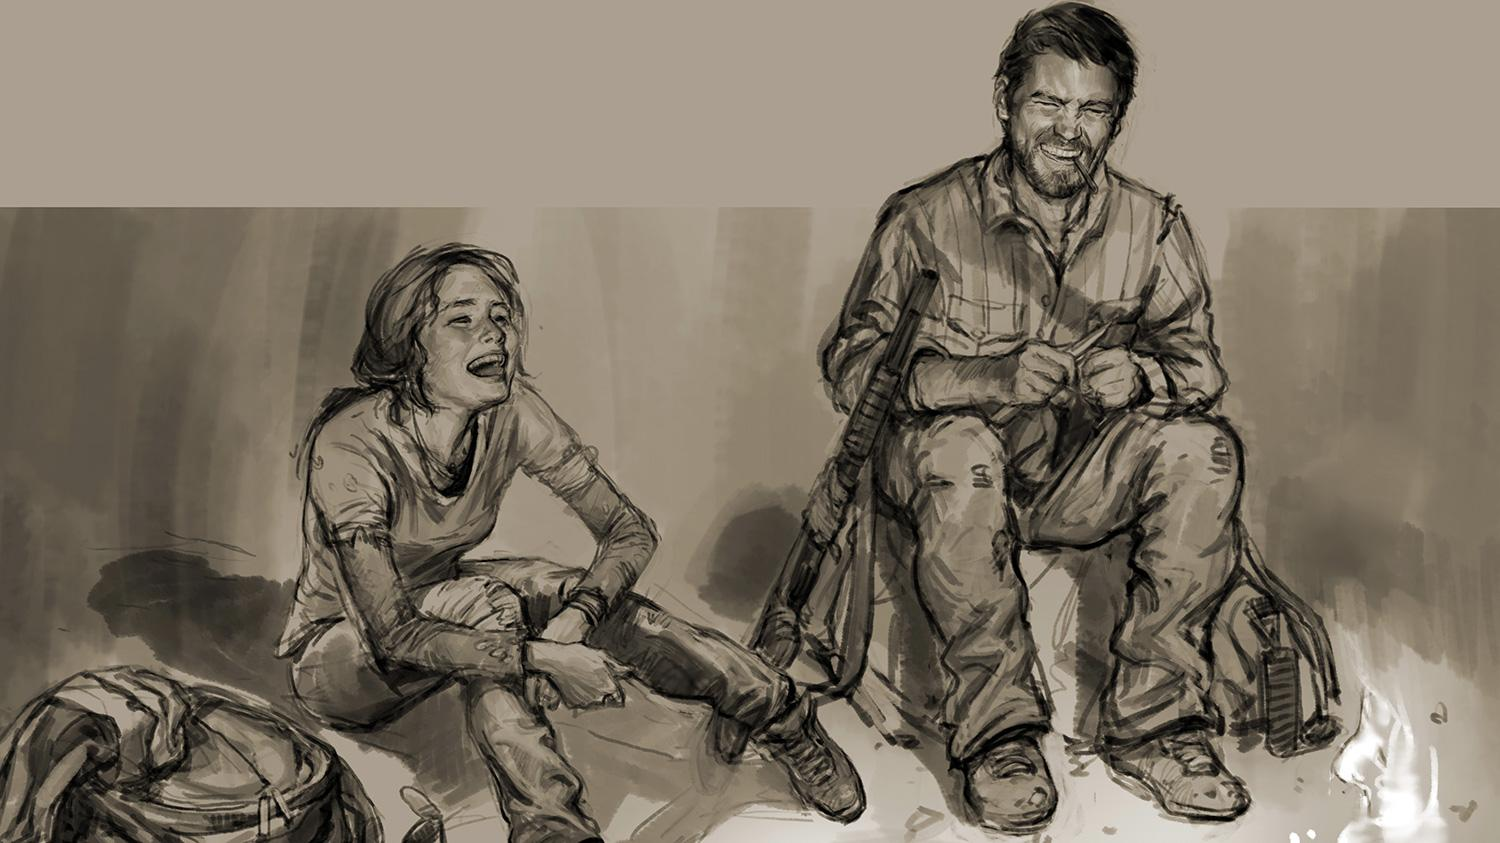 drawing game art See Concept Art From Groundbreaking Video Games Including